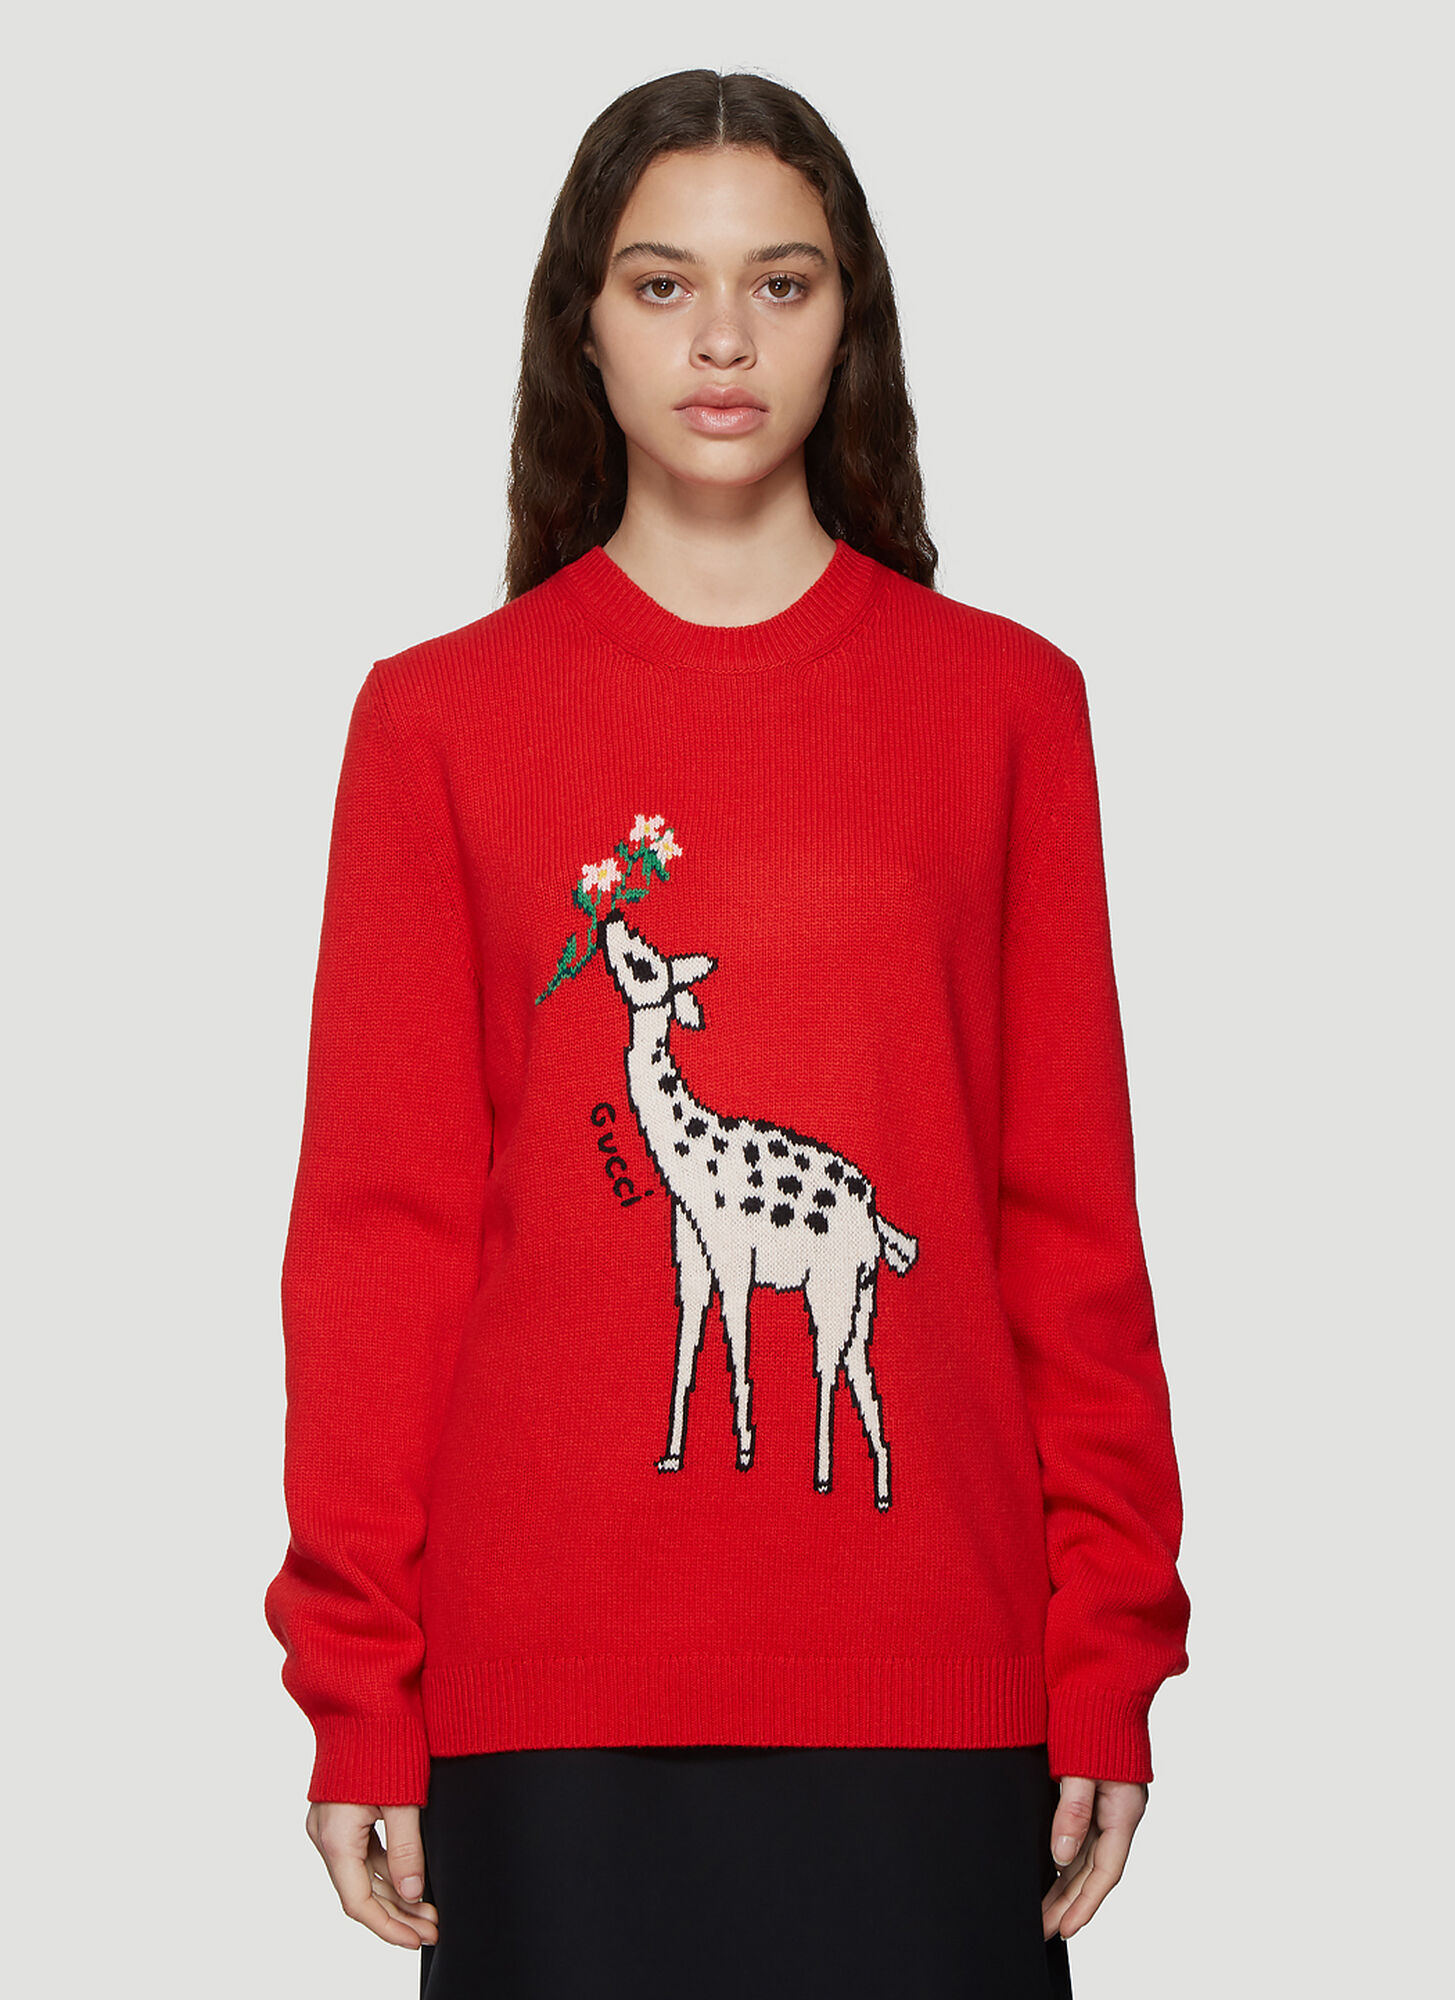 Gucci Intarsia Knit Sweater in Red